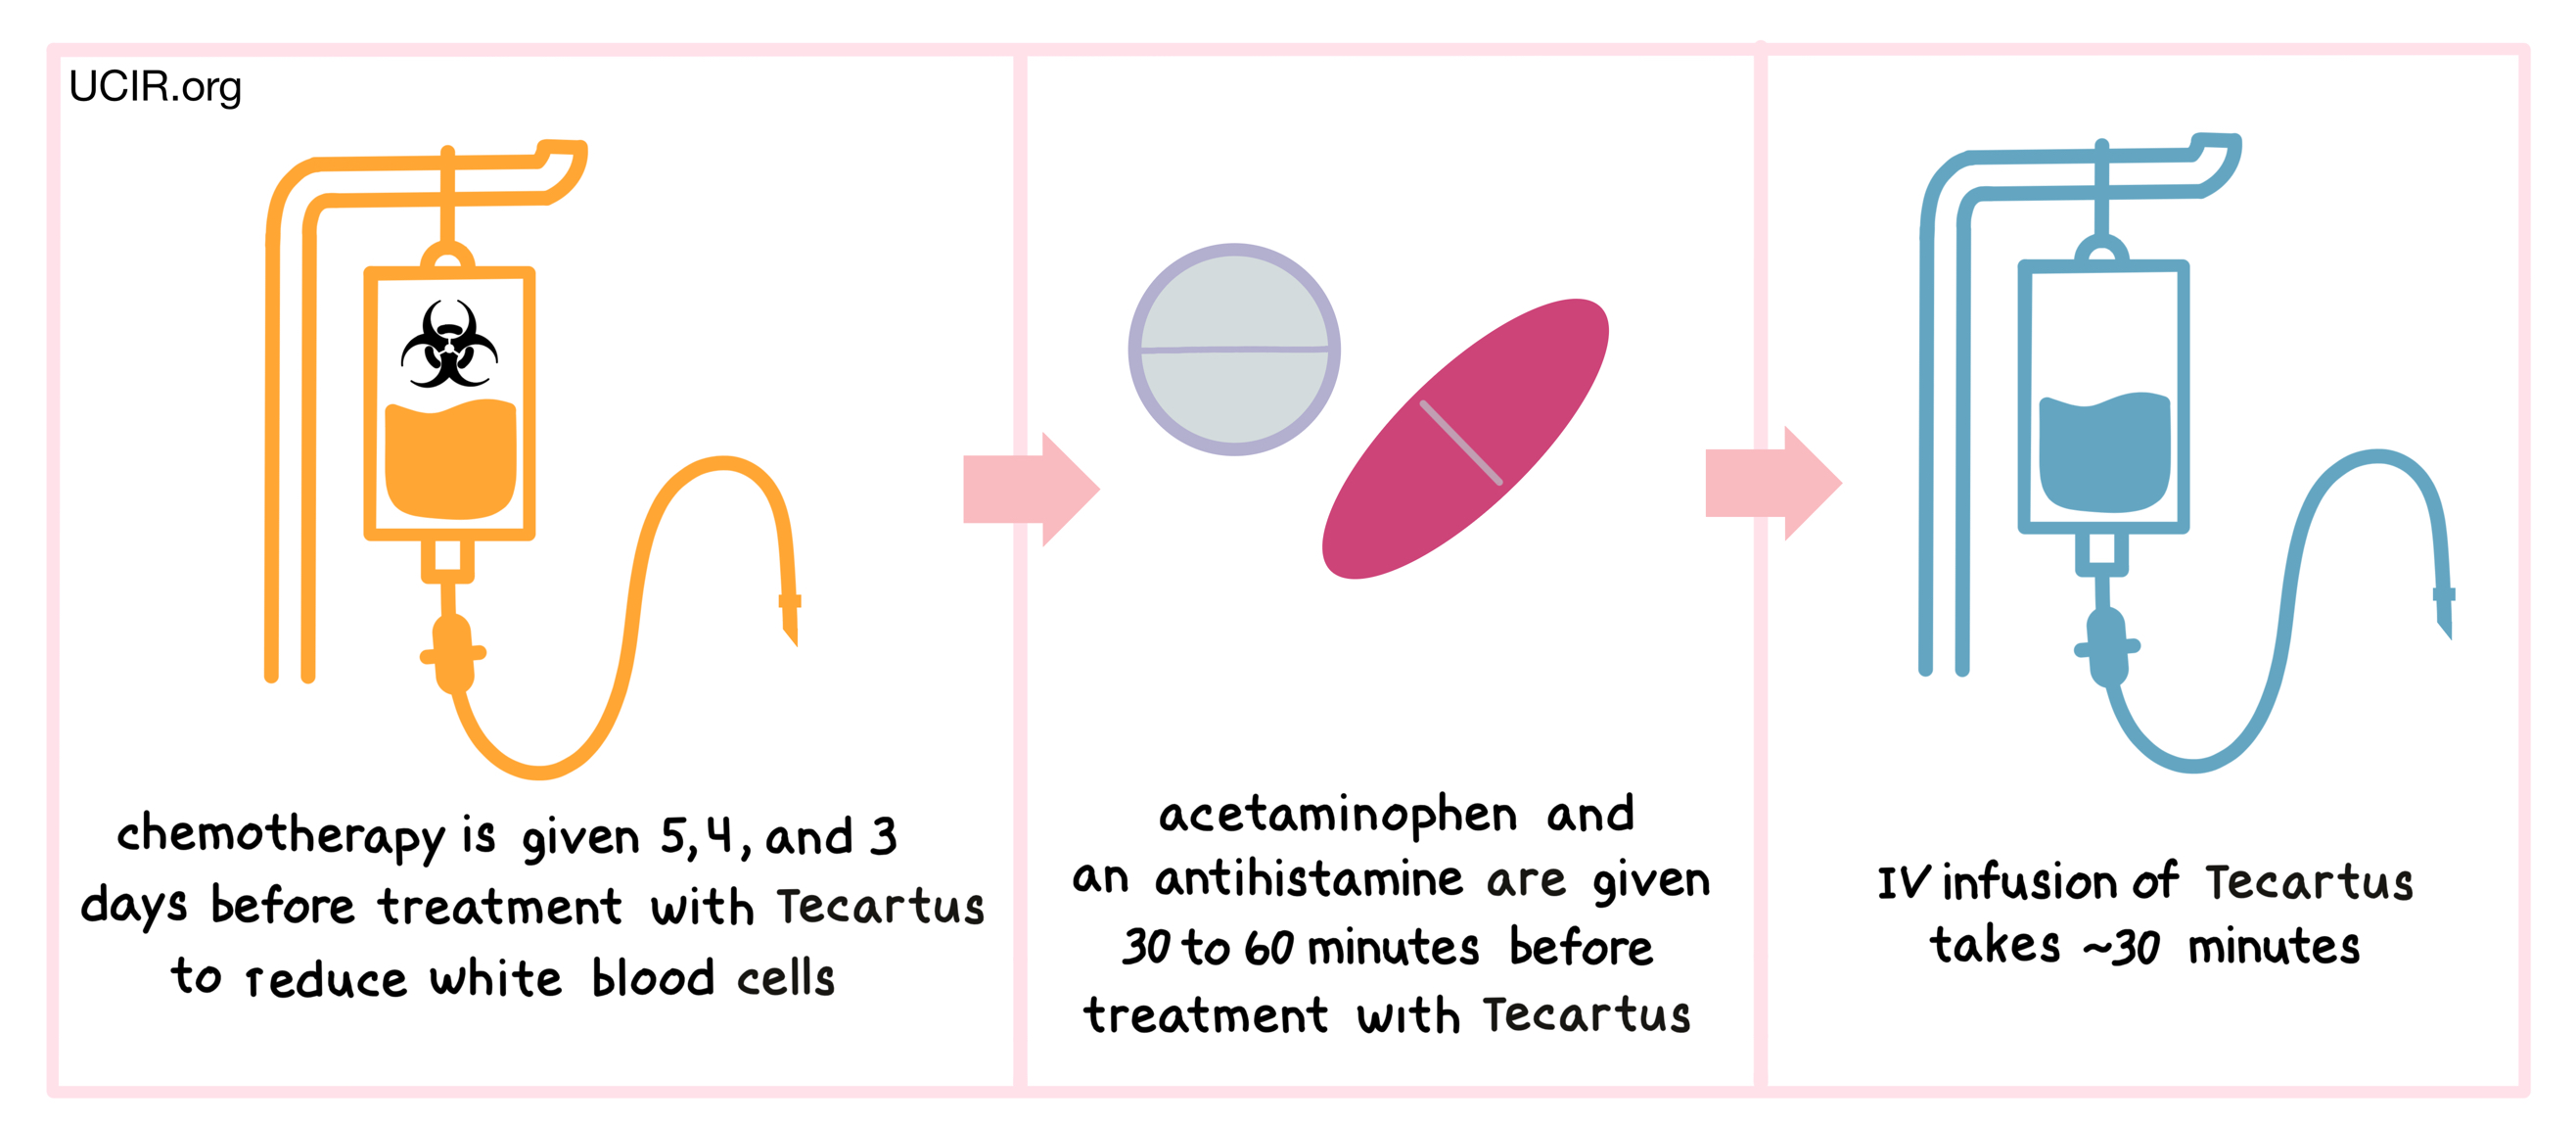 Illustration showing how Tecartus is administered